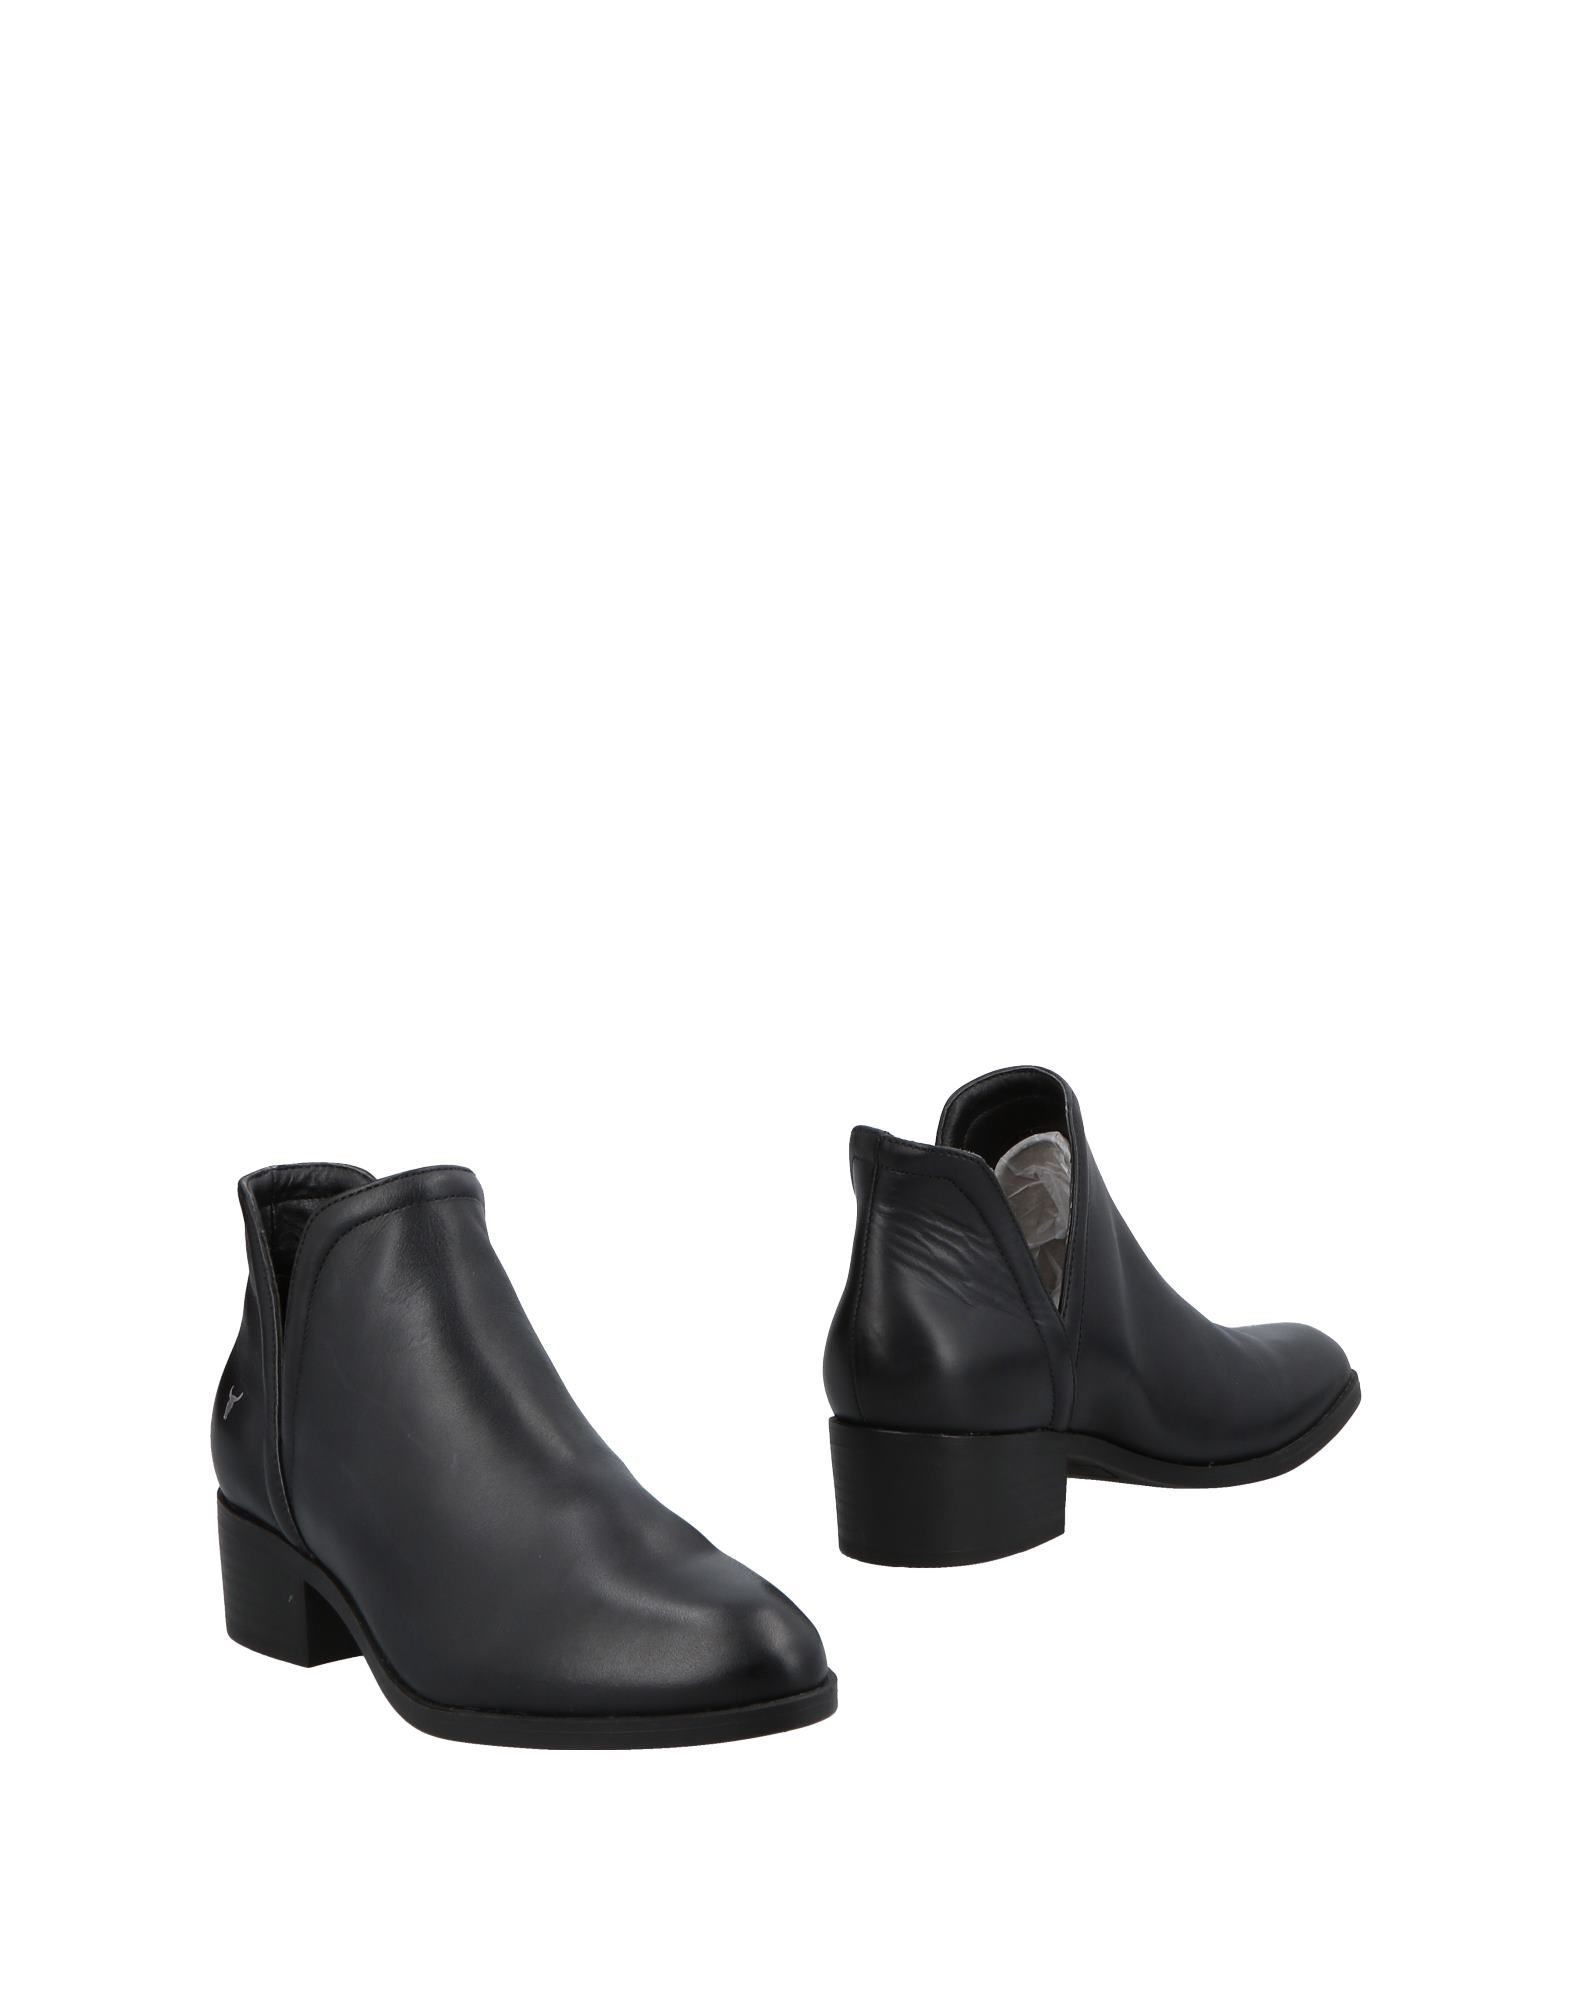 WINDSOR SMITH Booties in Black